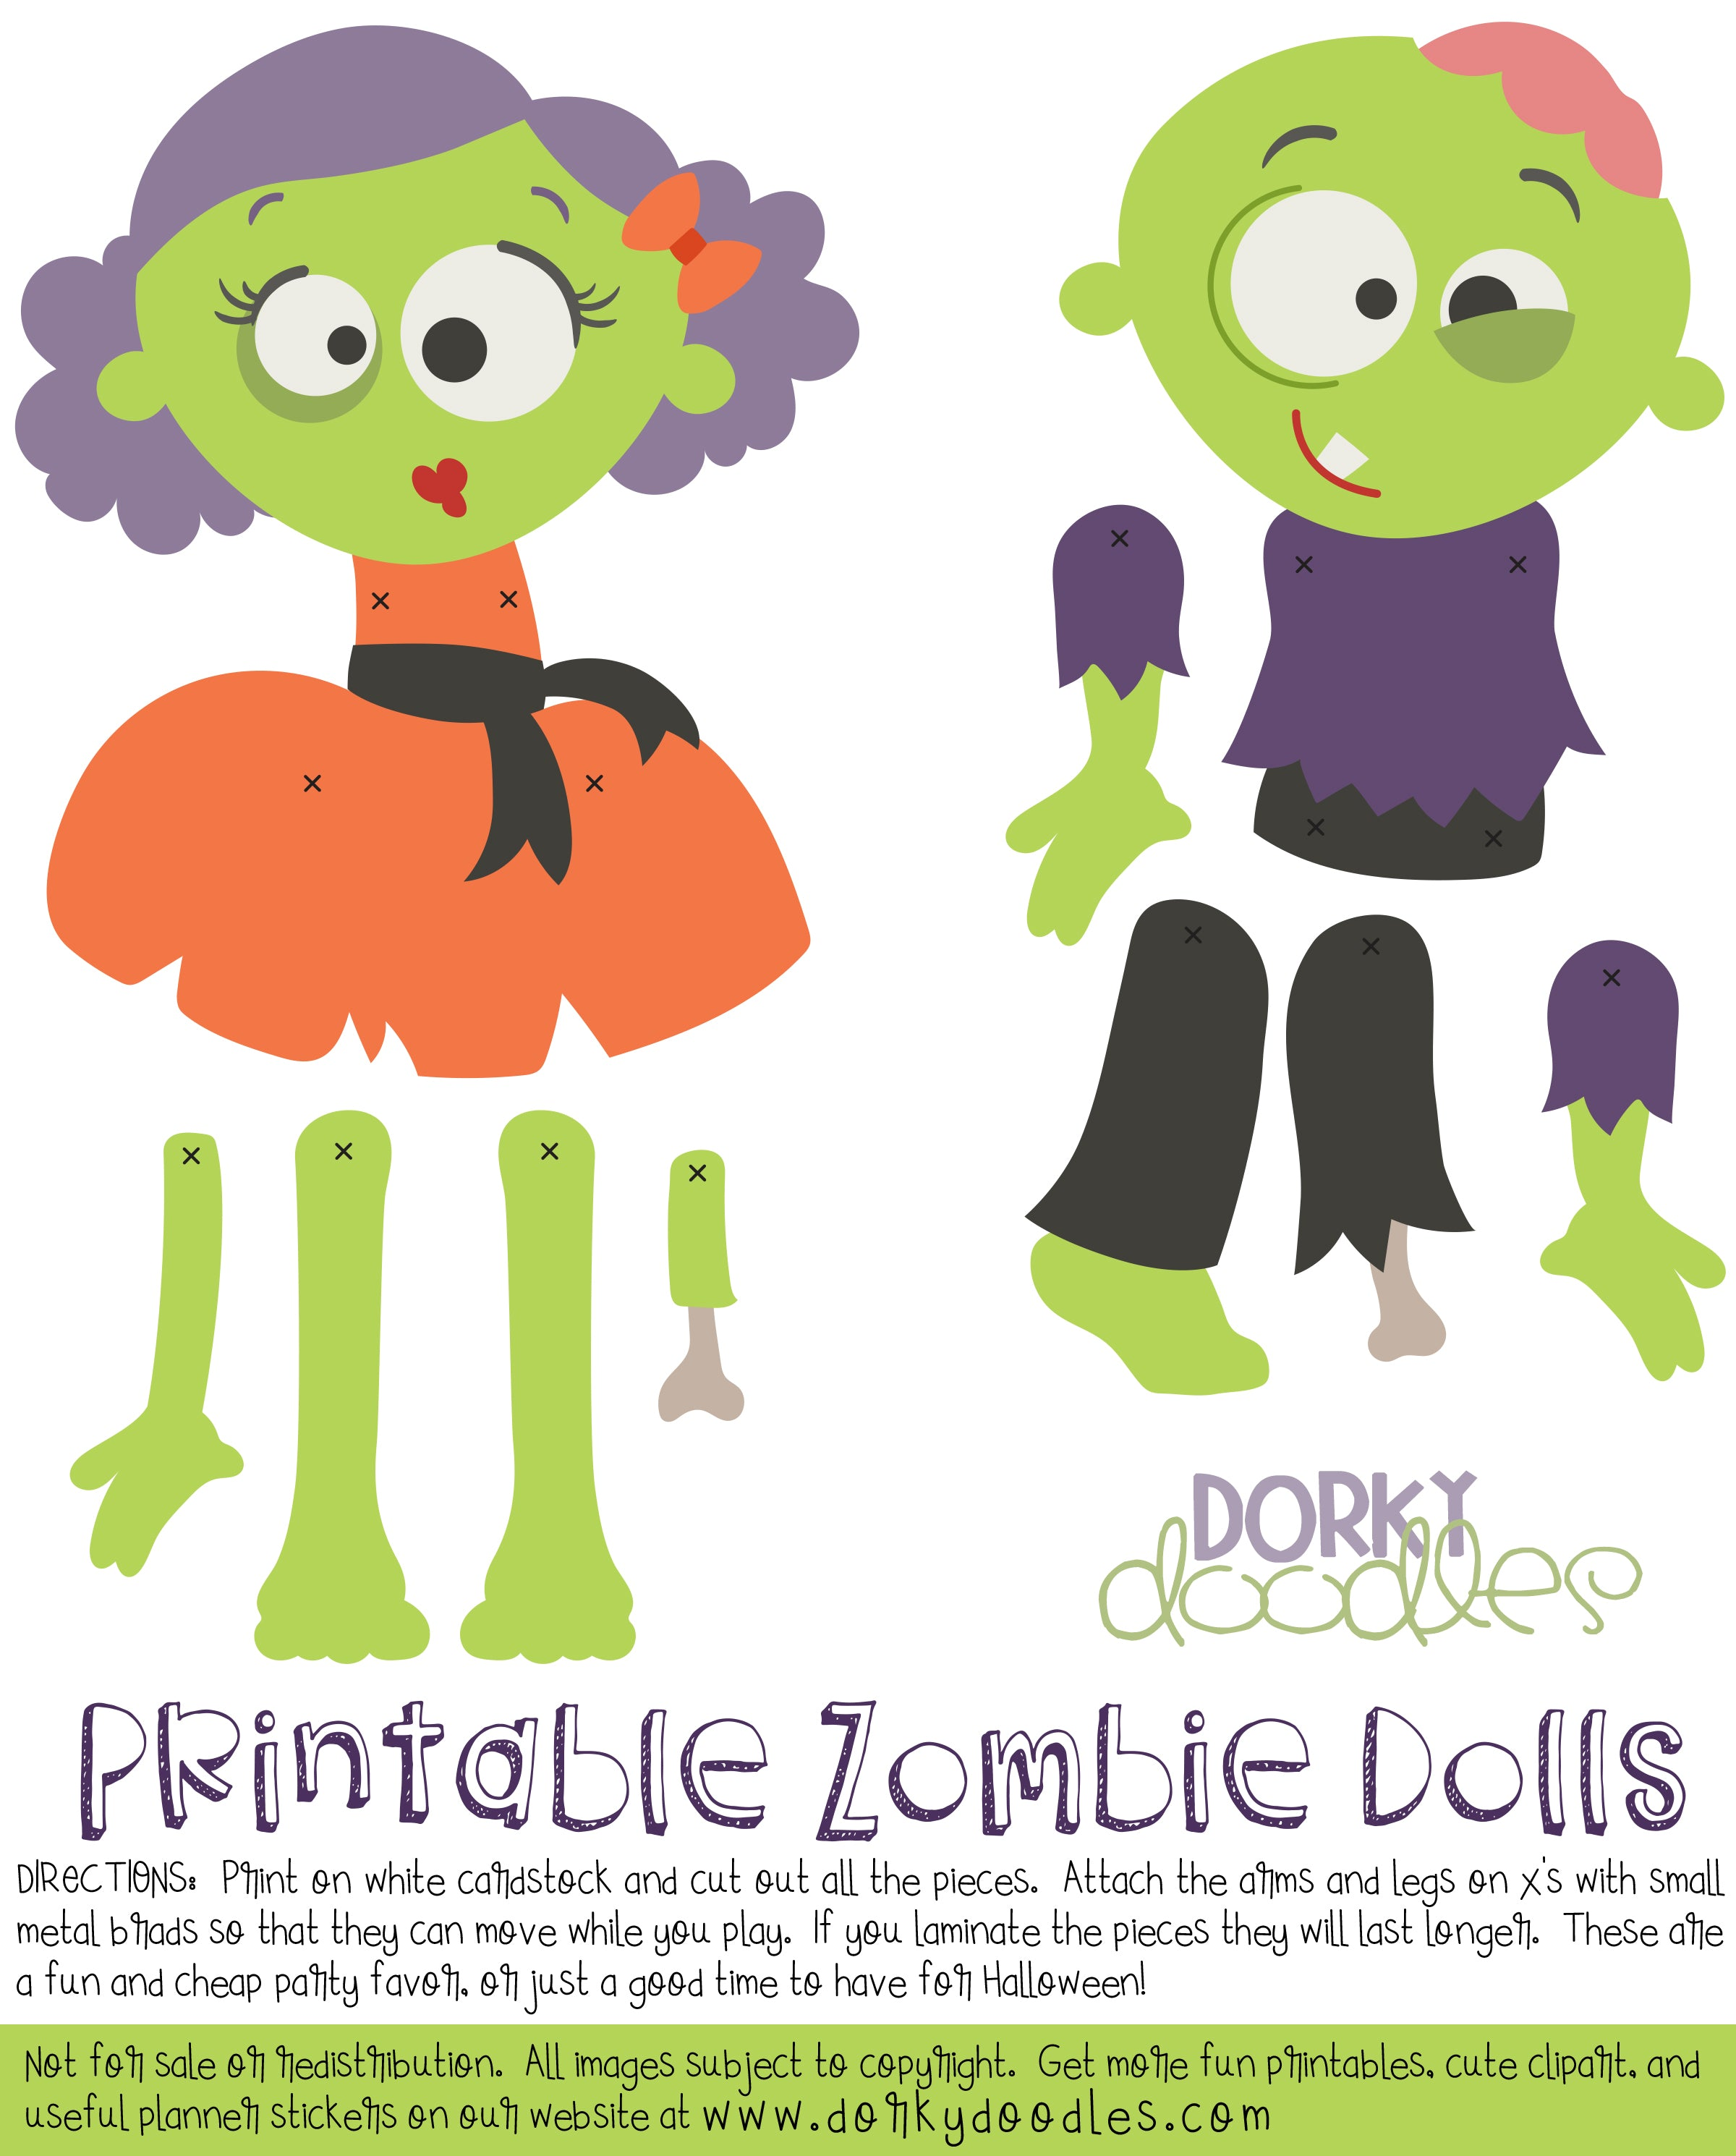 image about Paper Dolls to Printable identified as Zombie Paper Dolls Printable Dorky Doodles